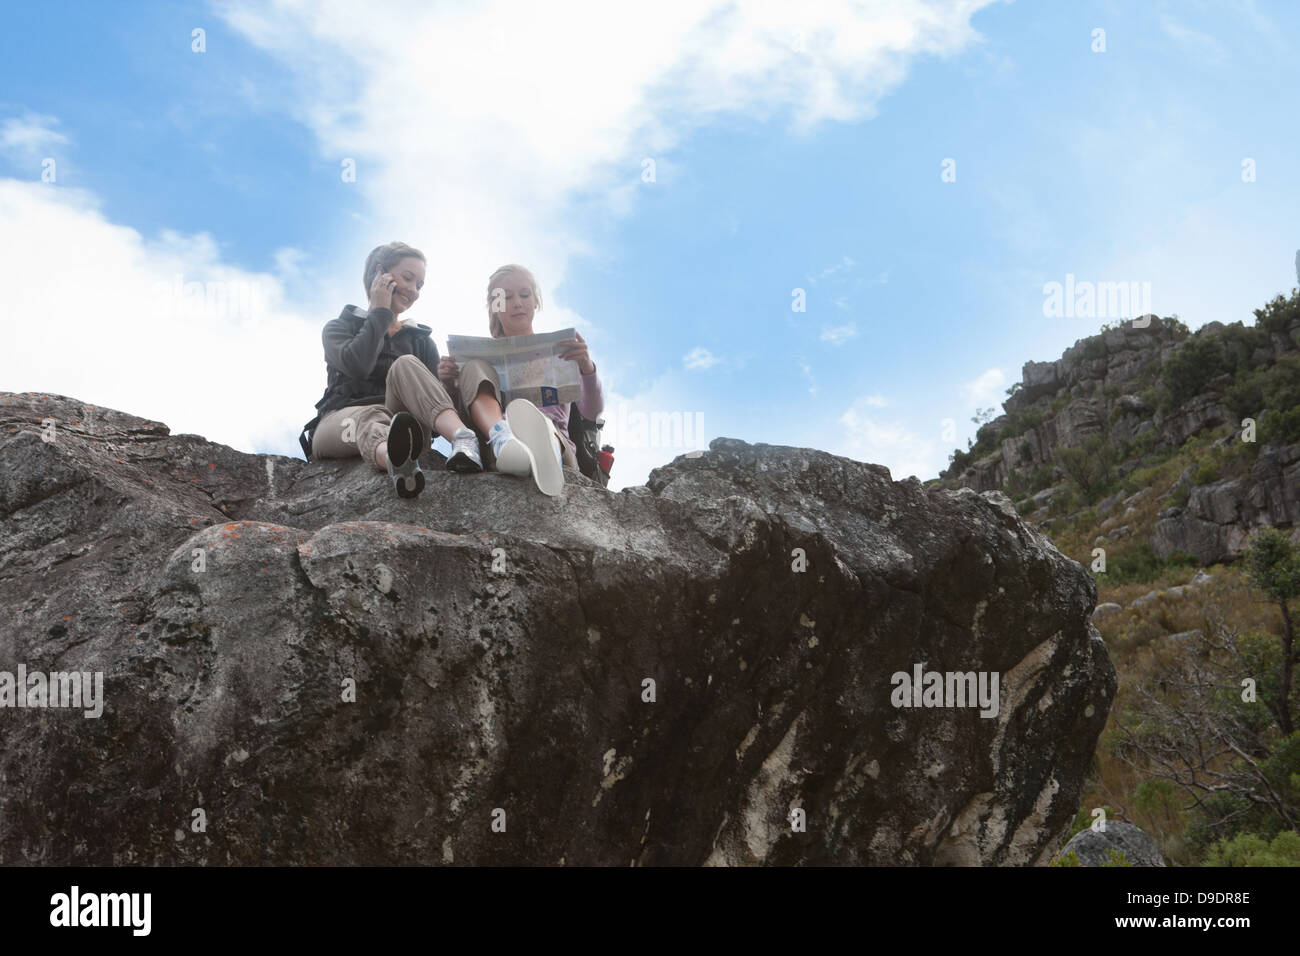 Two girl hikers reading map on top of rock formation - Stock Image